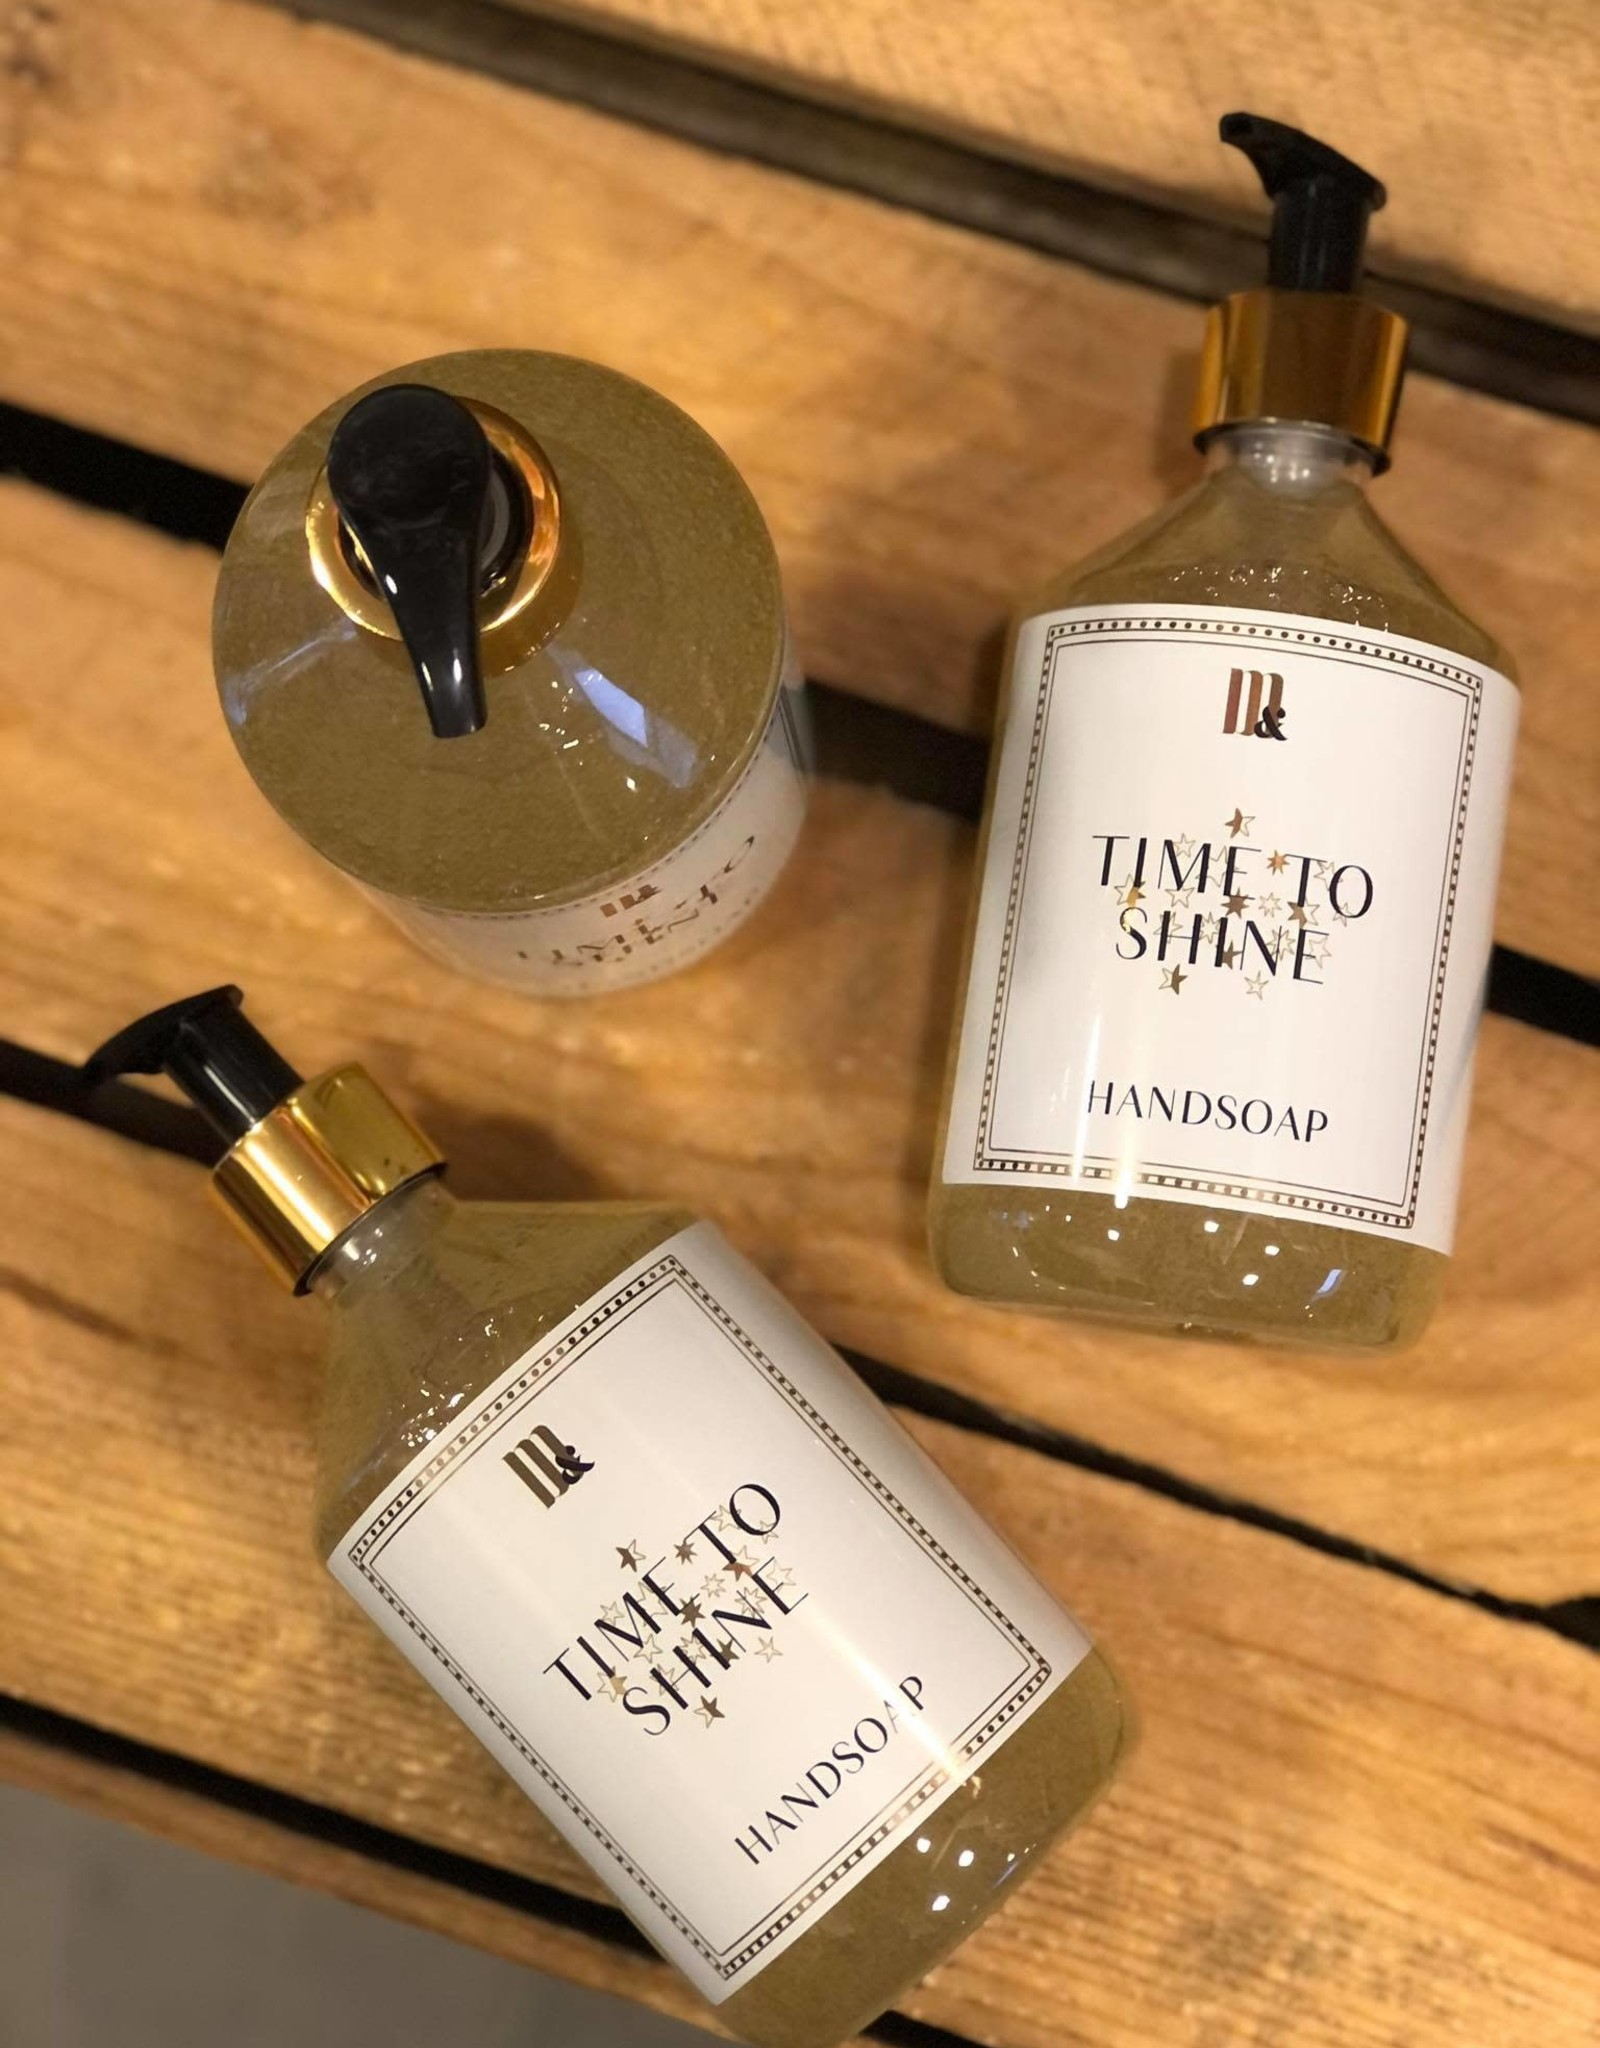 ME&MATS Hand soap - Time To Shine